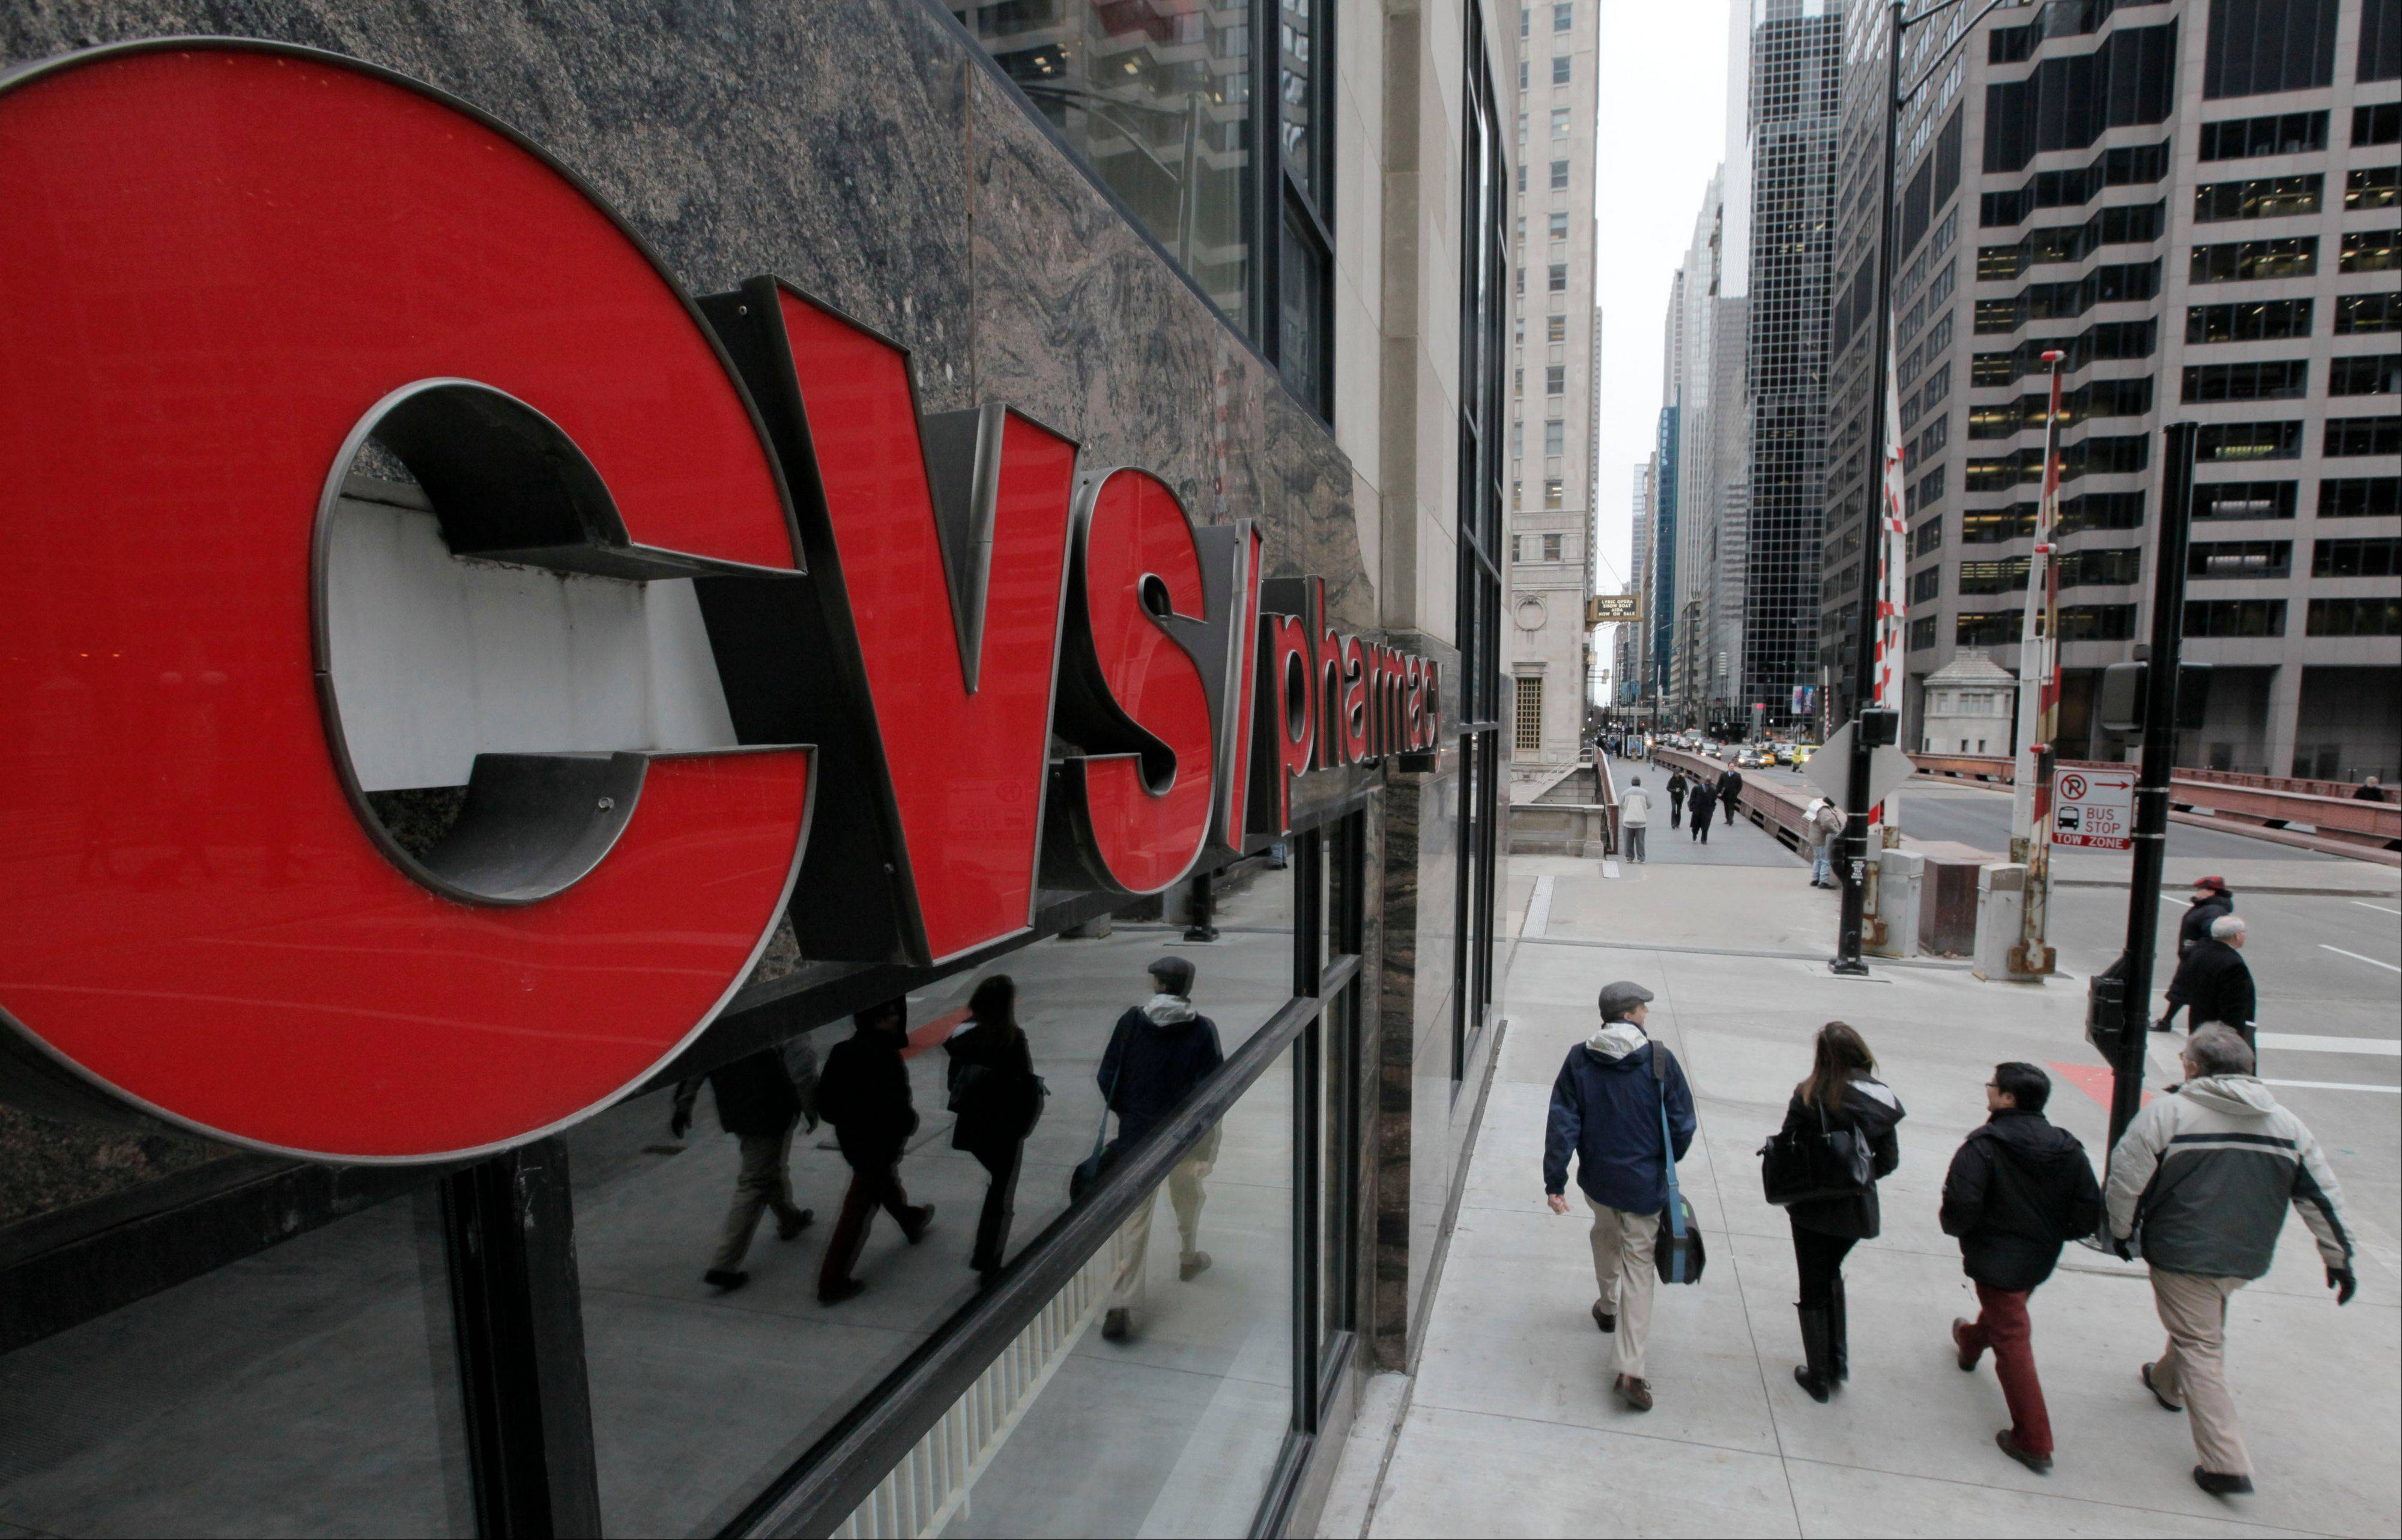 CVS Caremark says its third-quarter net income climbed 25 percent in performance that beat Wall Street expectations.